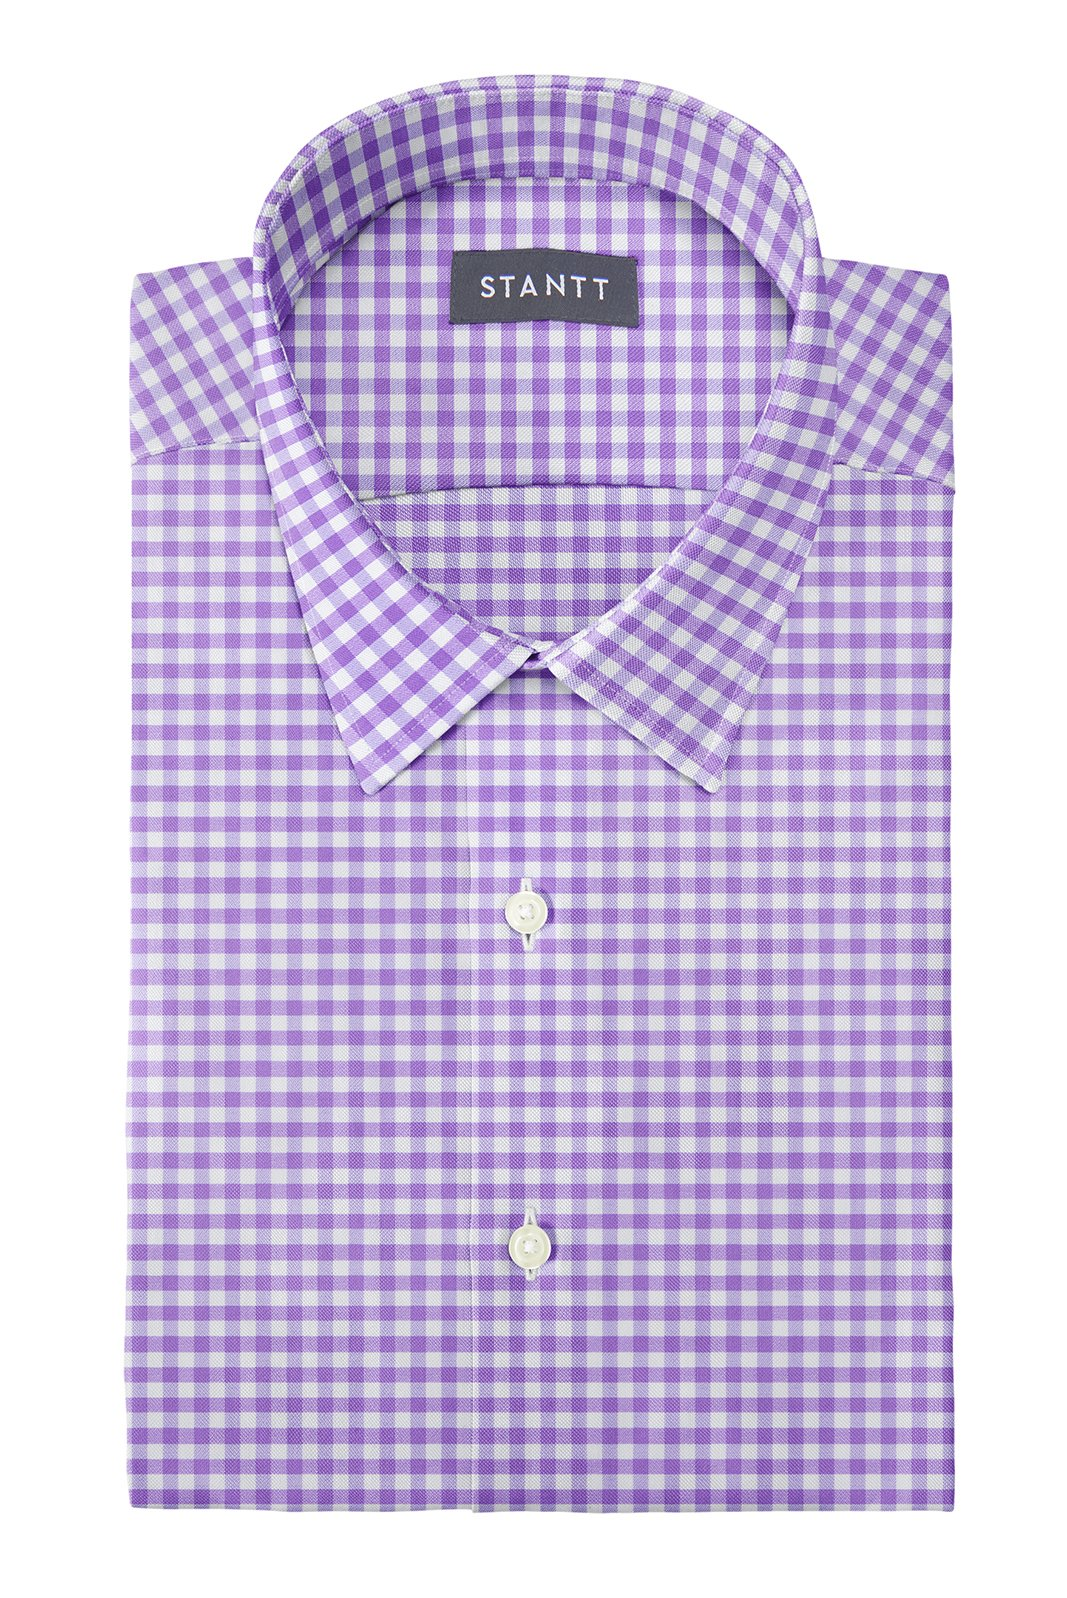 Performance Purple Gingham: Semi-Spread Collar, Barrel Cuff